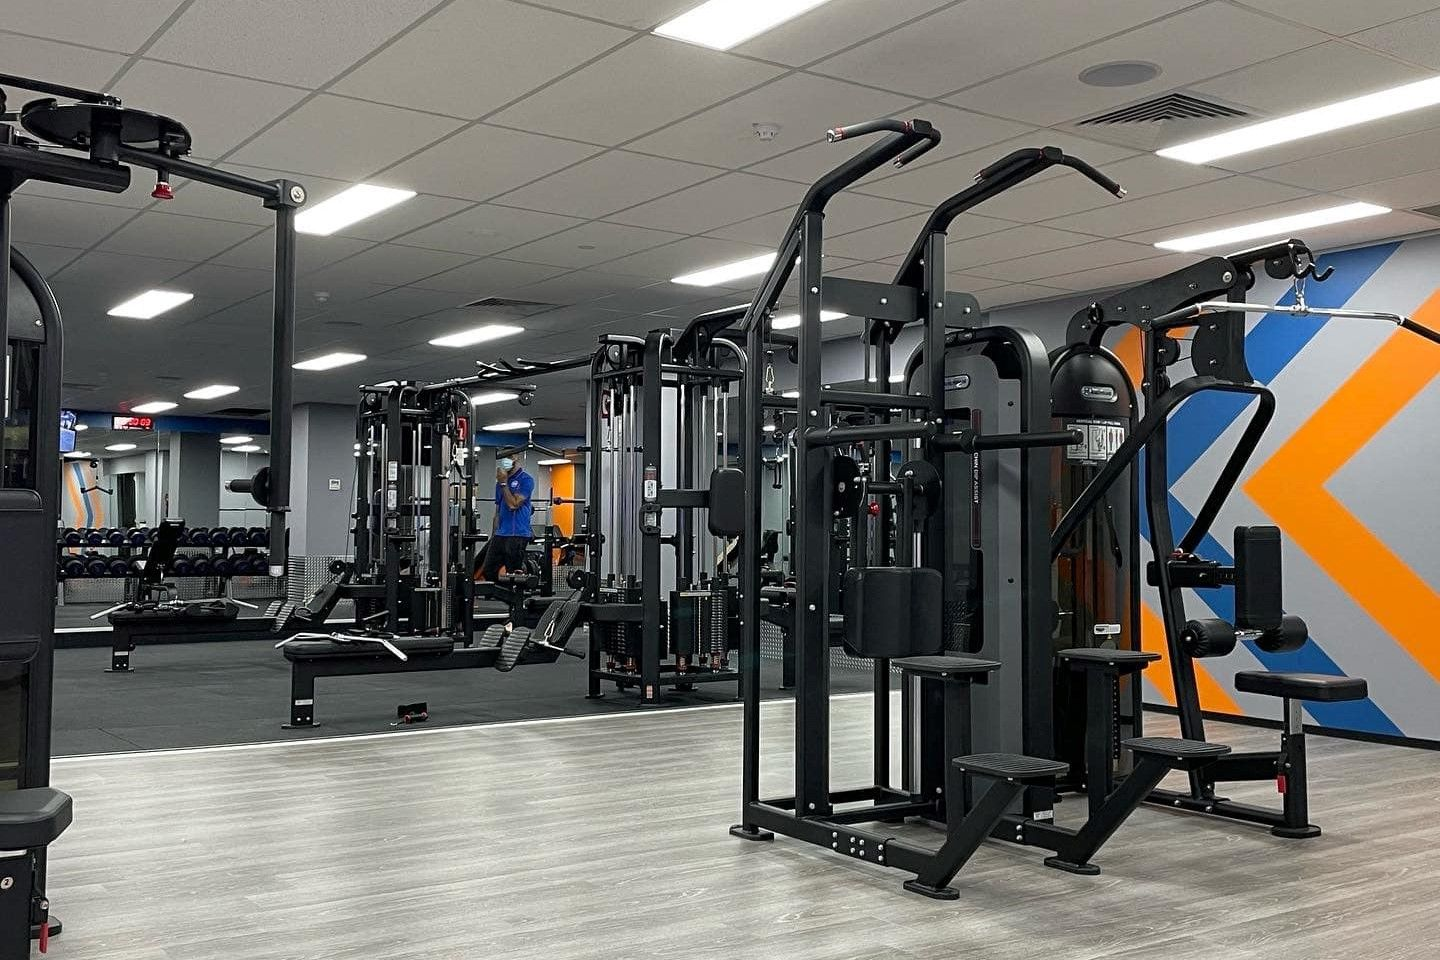 Plus Fitness hits 200 clubs with opening of Ryde   Inside Franchise Business Executive